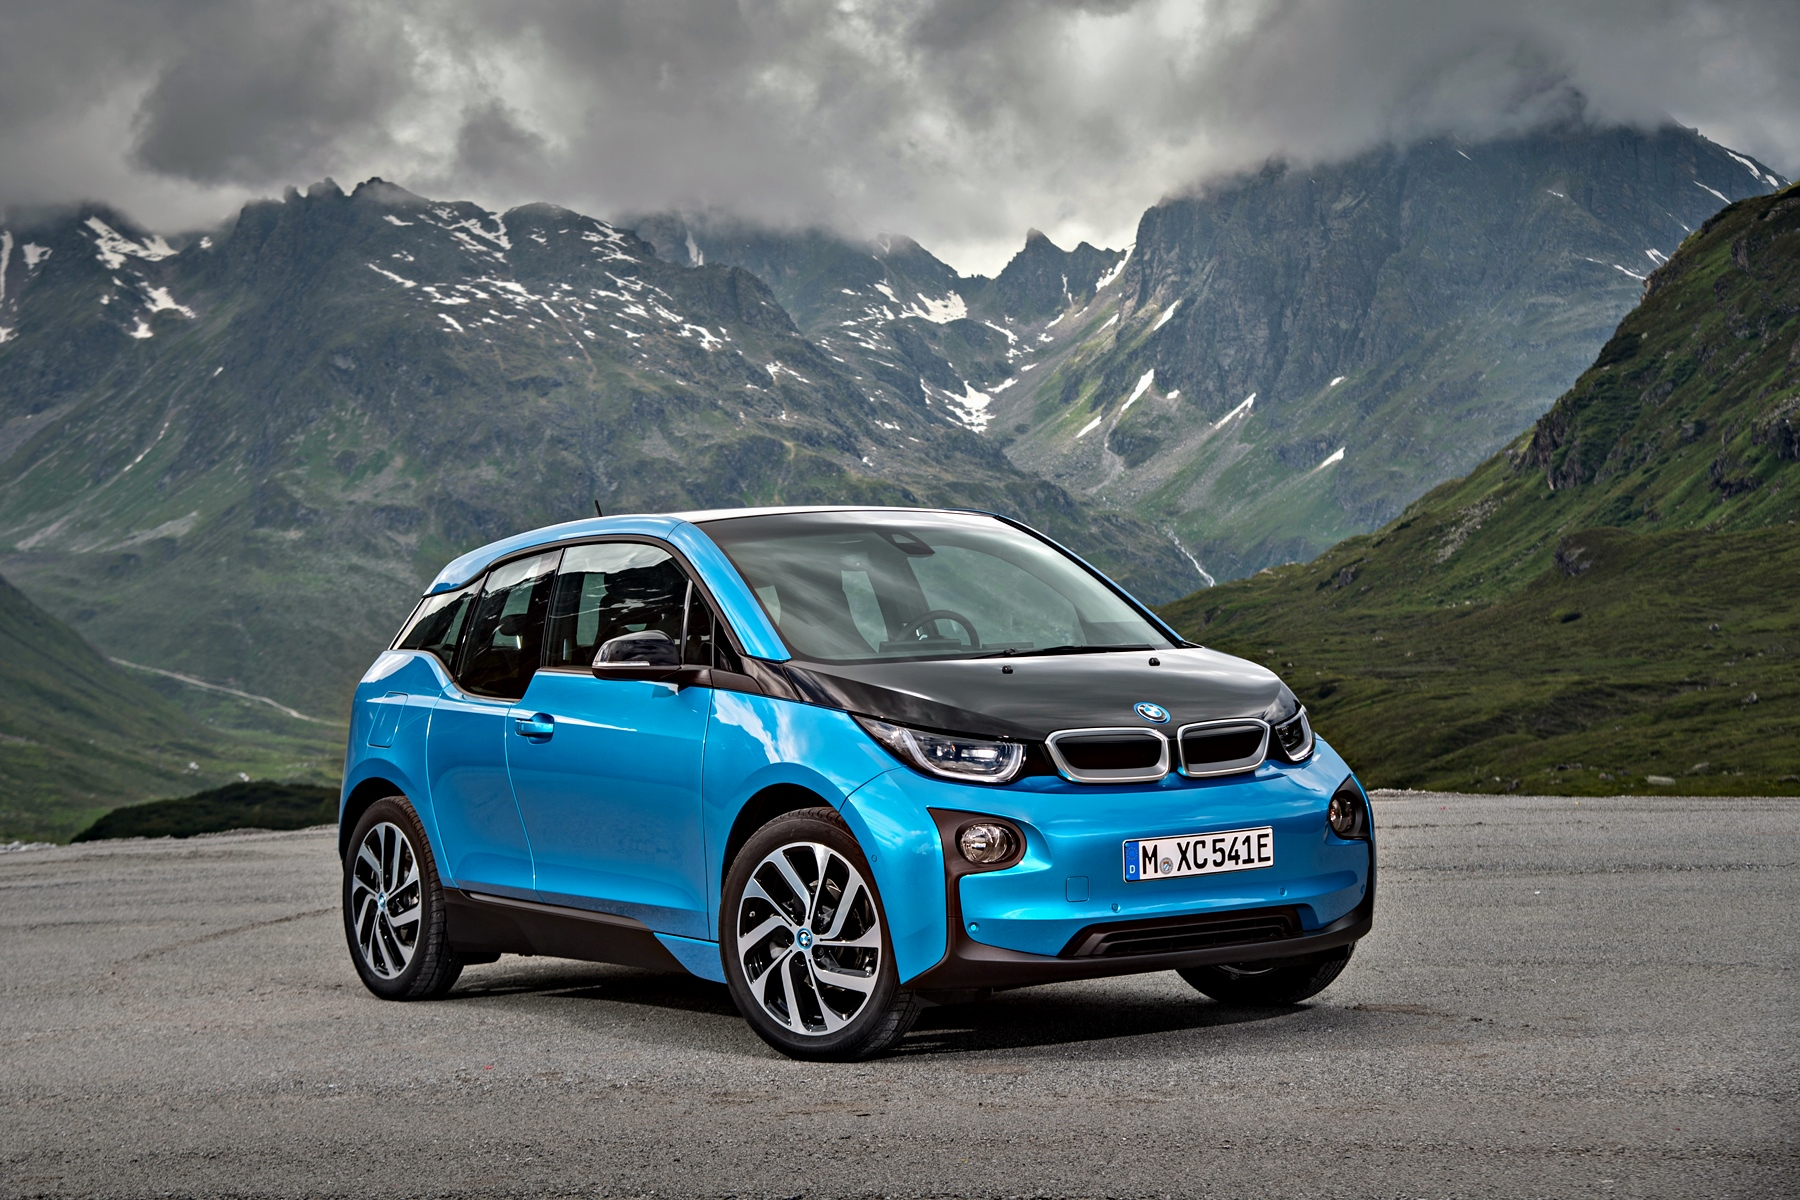 la bmw i3 atteint aussi les 300 km d autonomie ecolo auto. Black Bedroom Furniture Sets. Home Design Ideas